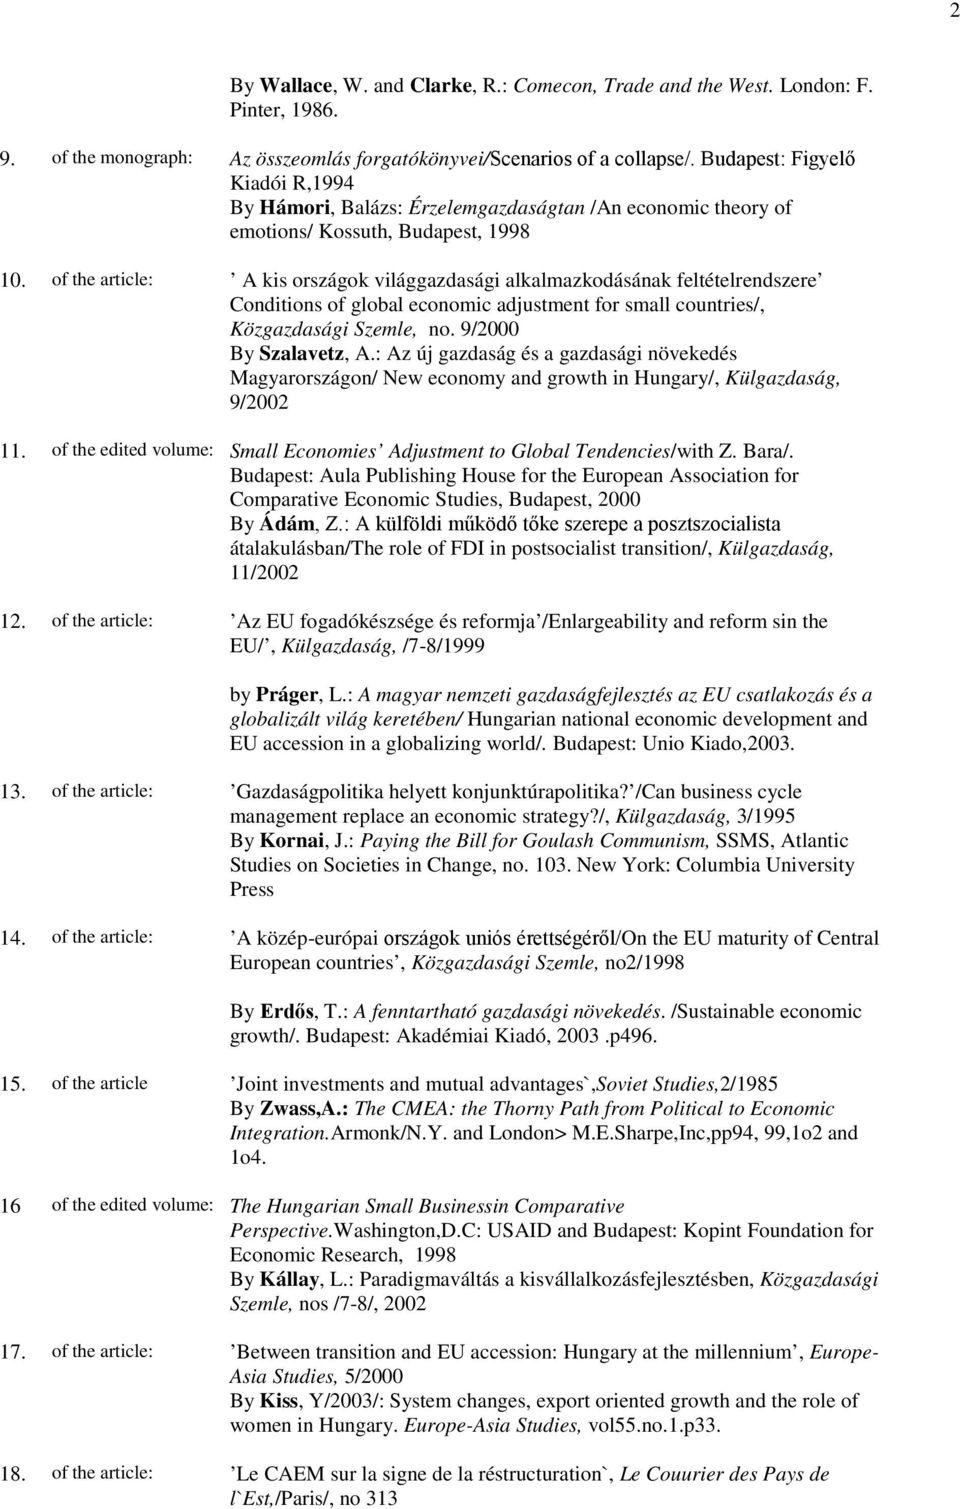 of the article: A kis országok világgazdasági alkalmazkodásának feltételrendszere Conditions of global economic adjustment for small countries/, Közgazdasági Szemle, no. 9/2000 By Szalavetz, A.